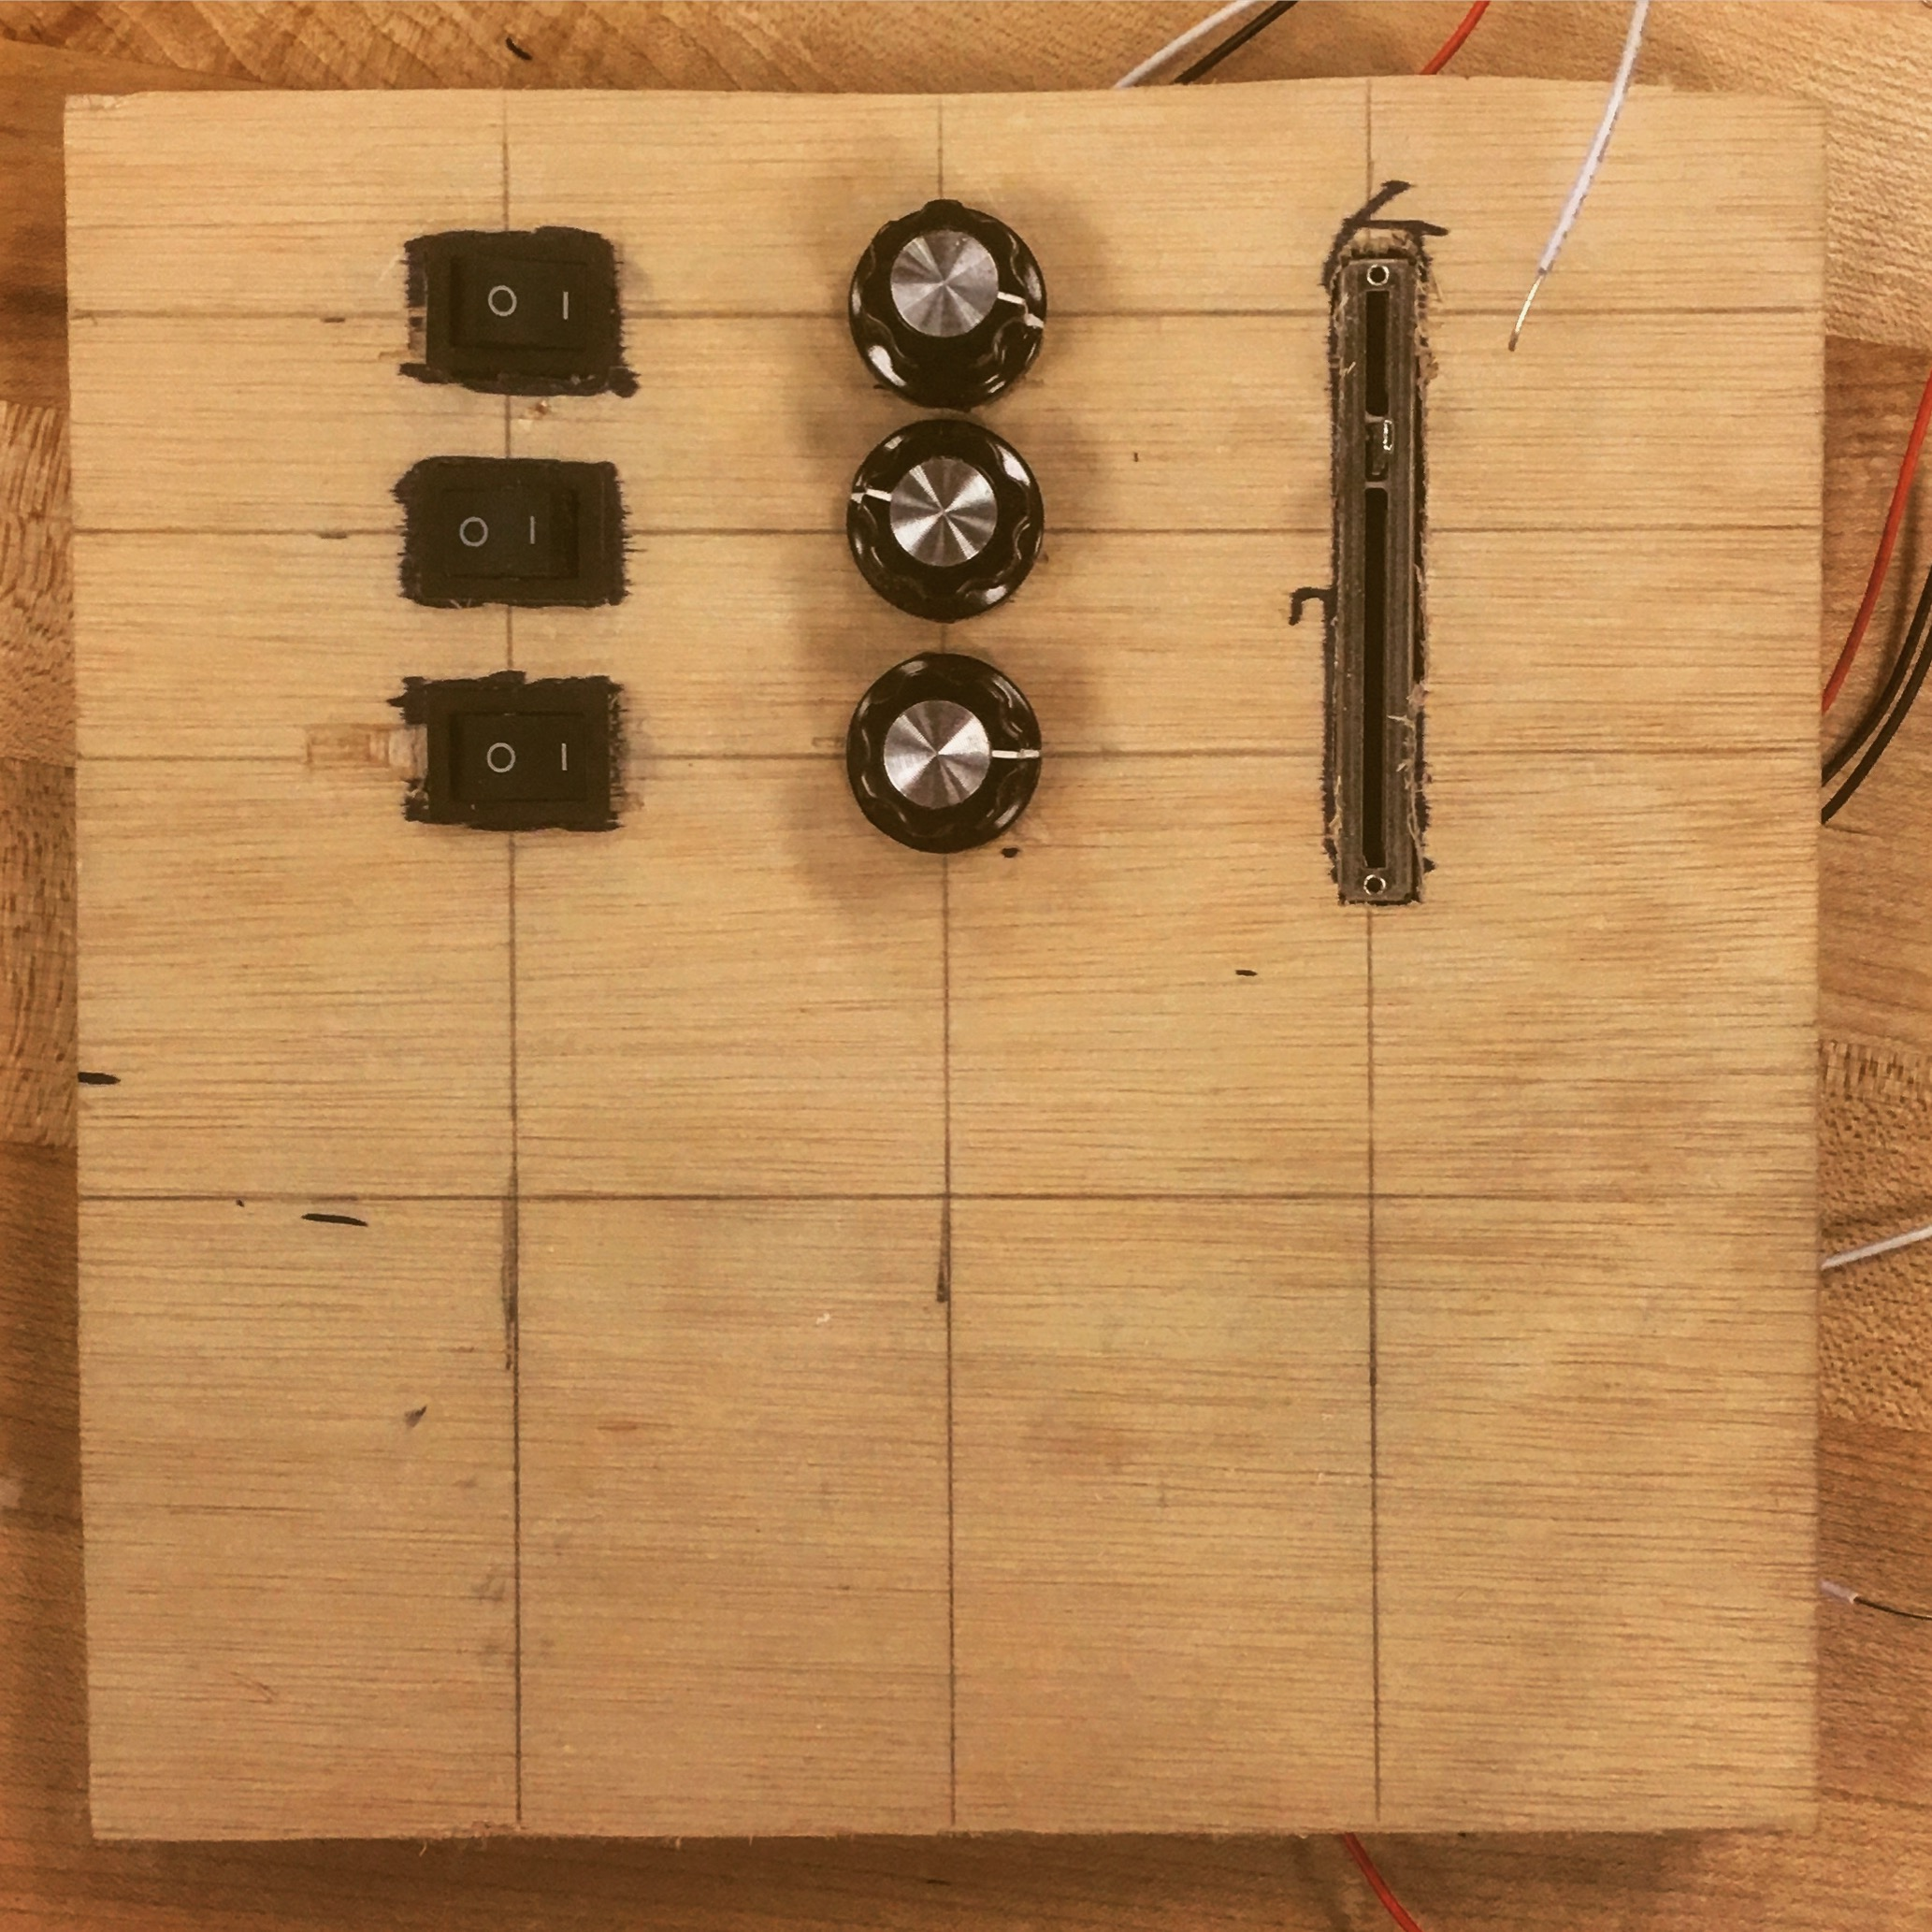 An early build stage of a panel, mapped out controls